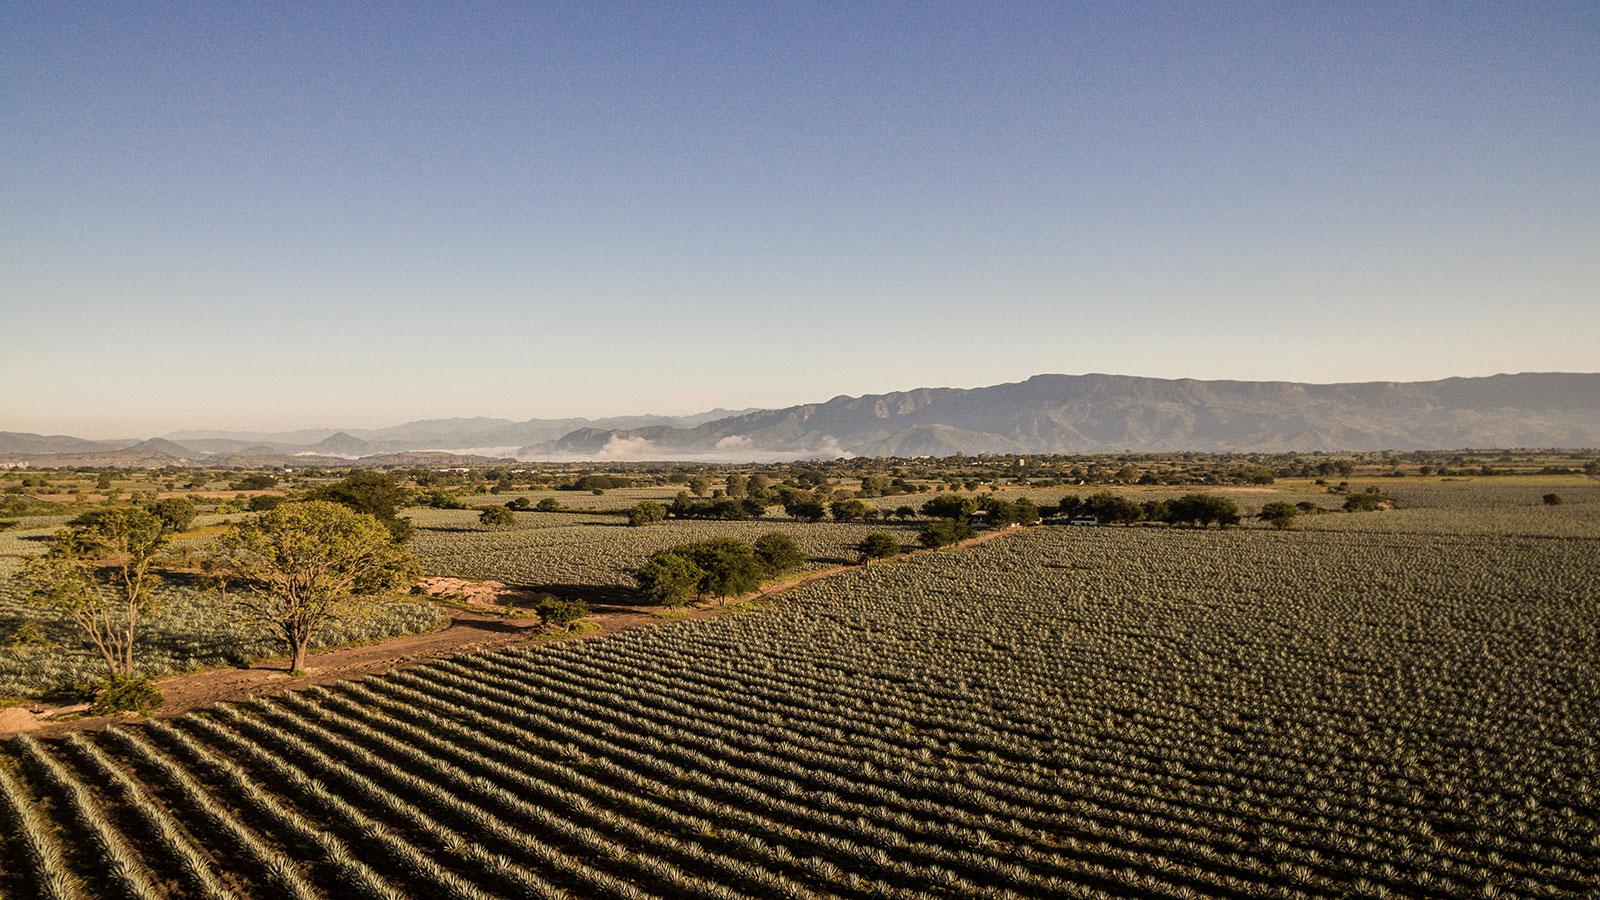 Agave field with mountains